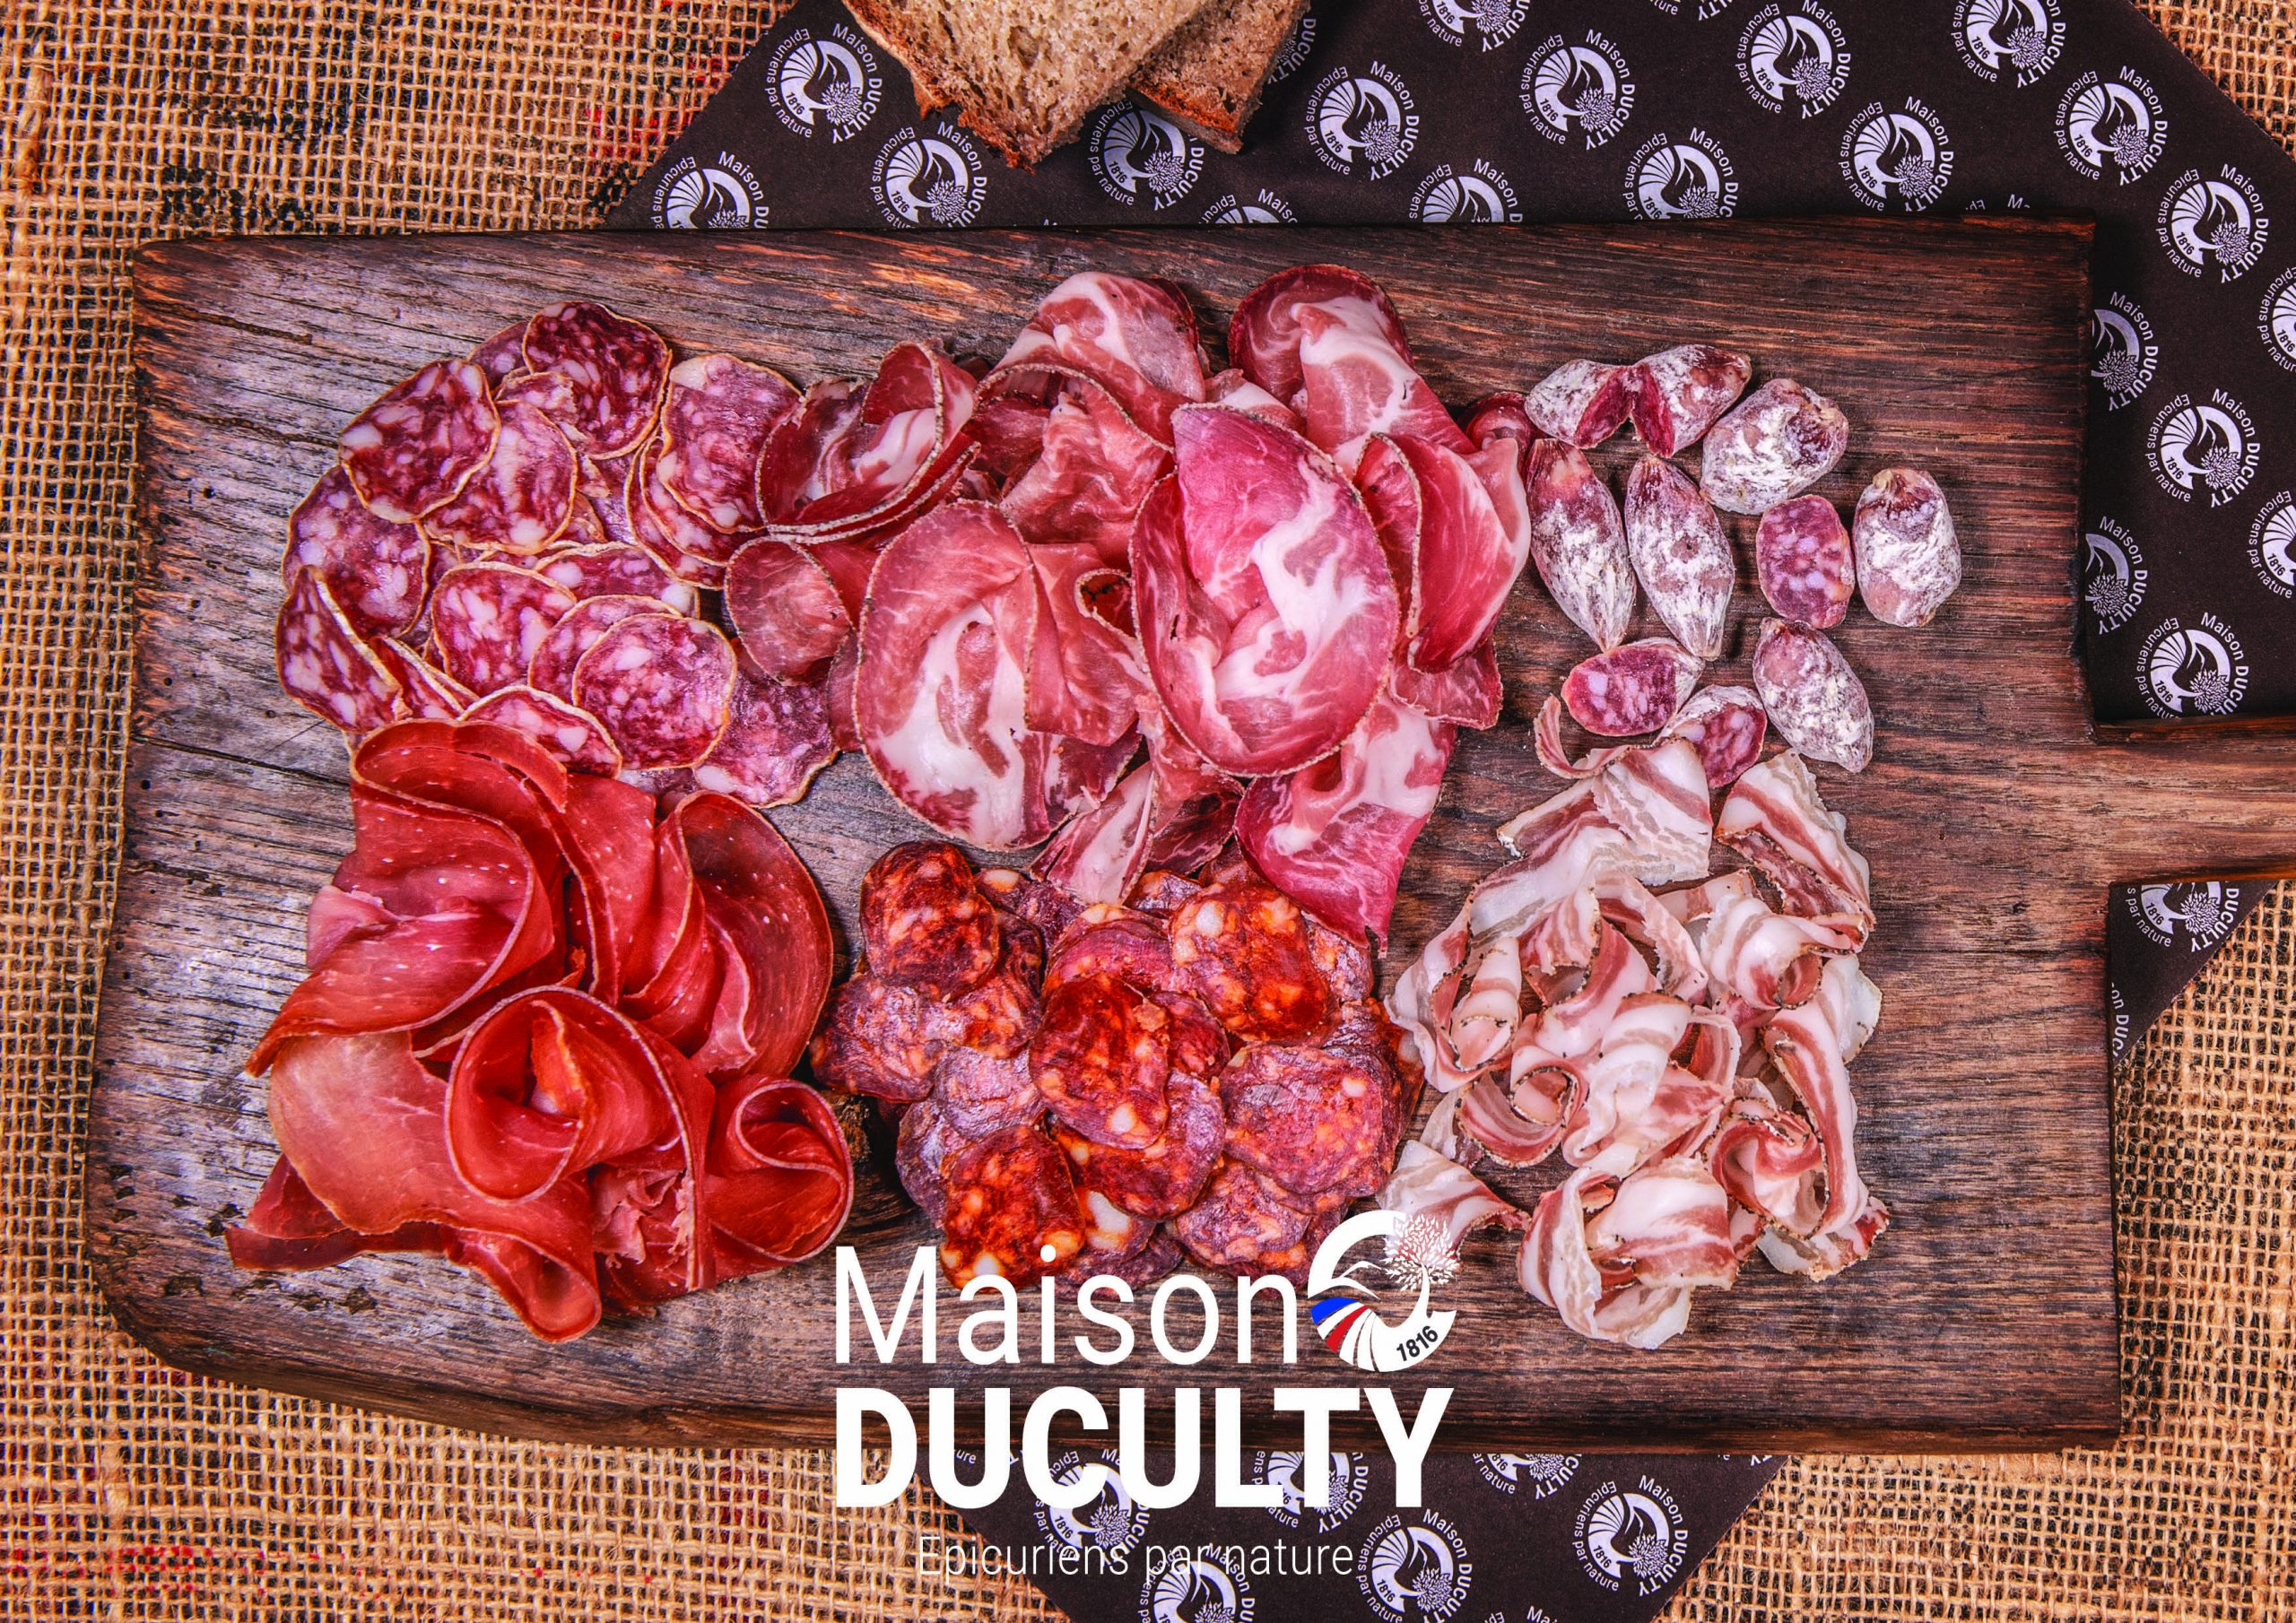 Planche Charcuterie Duculty